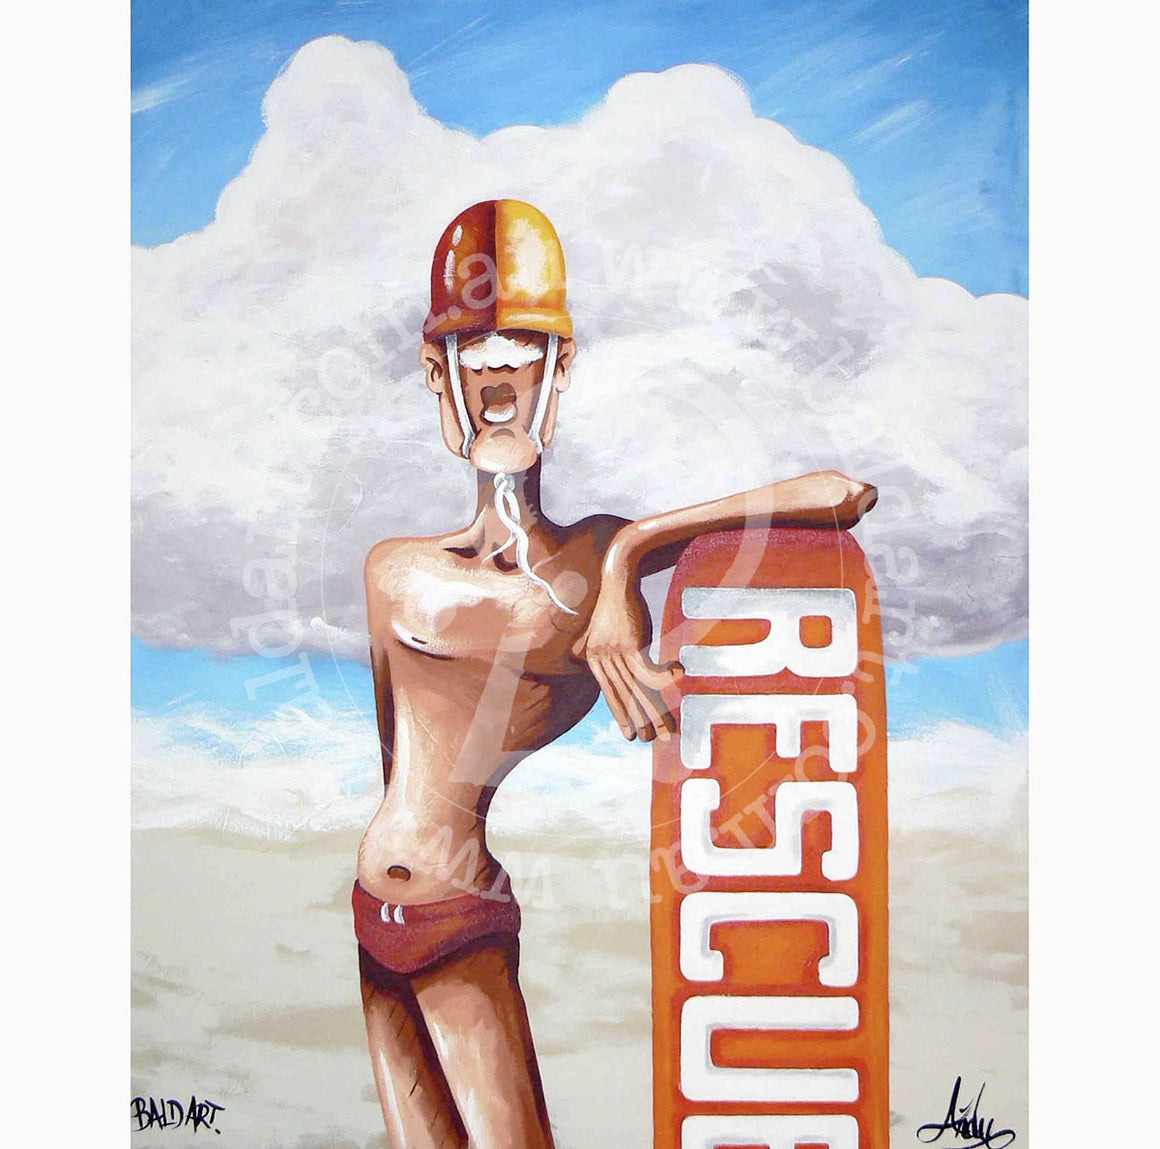 surf life saving artwork by andy baker of bald art